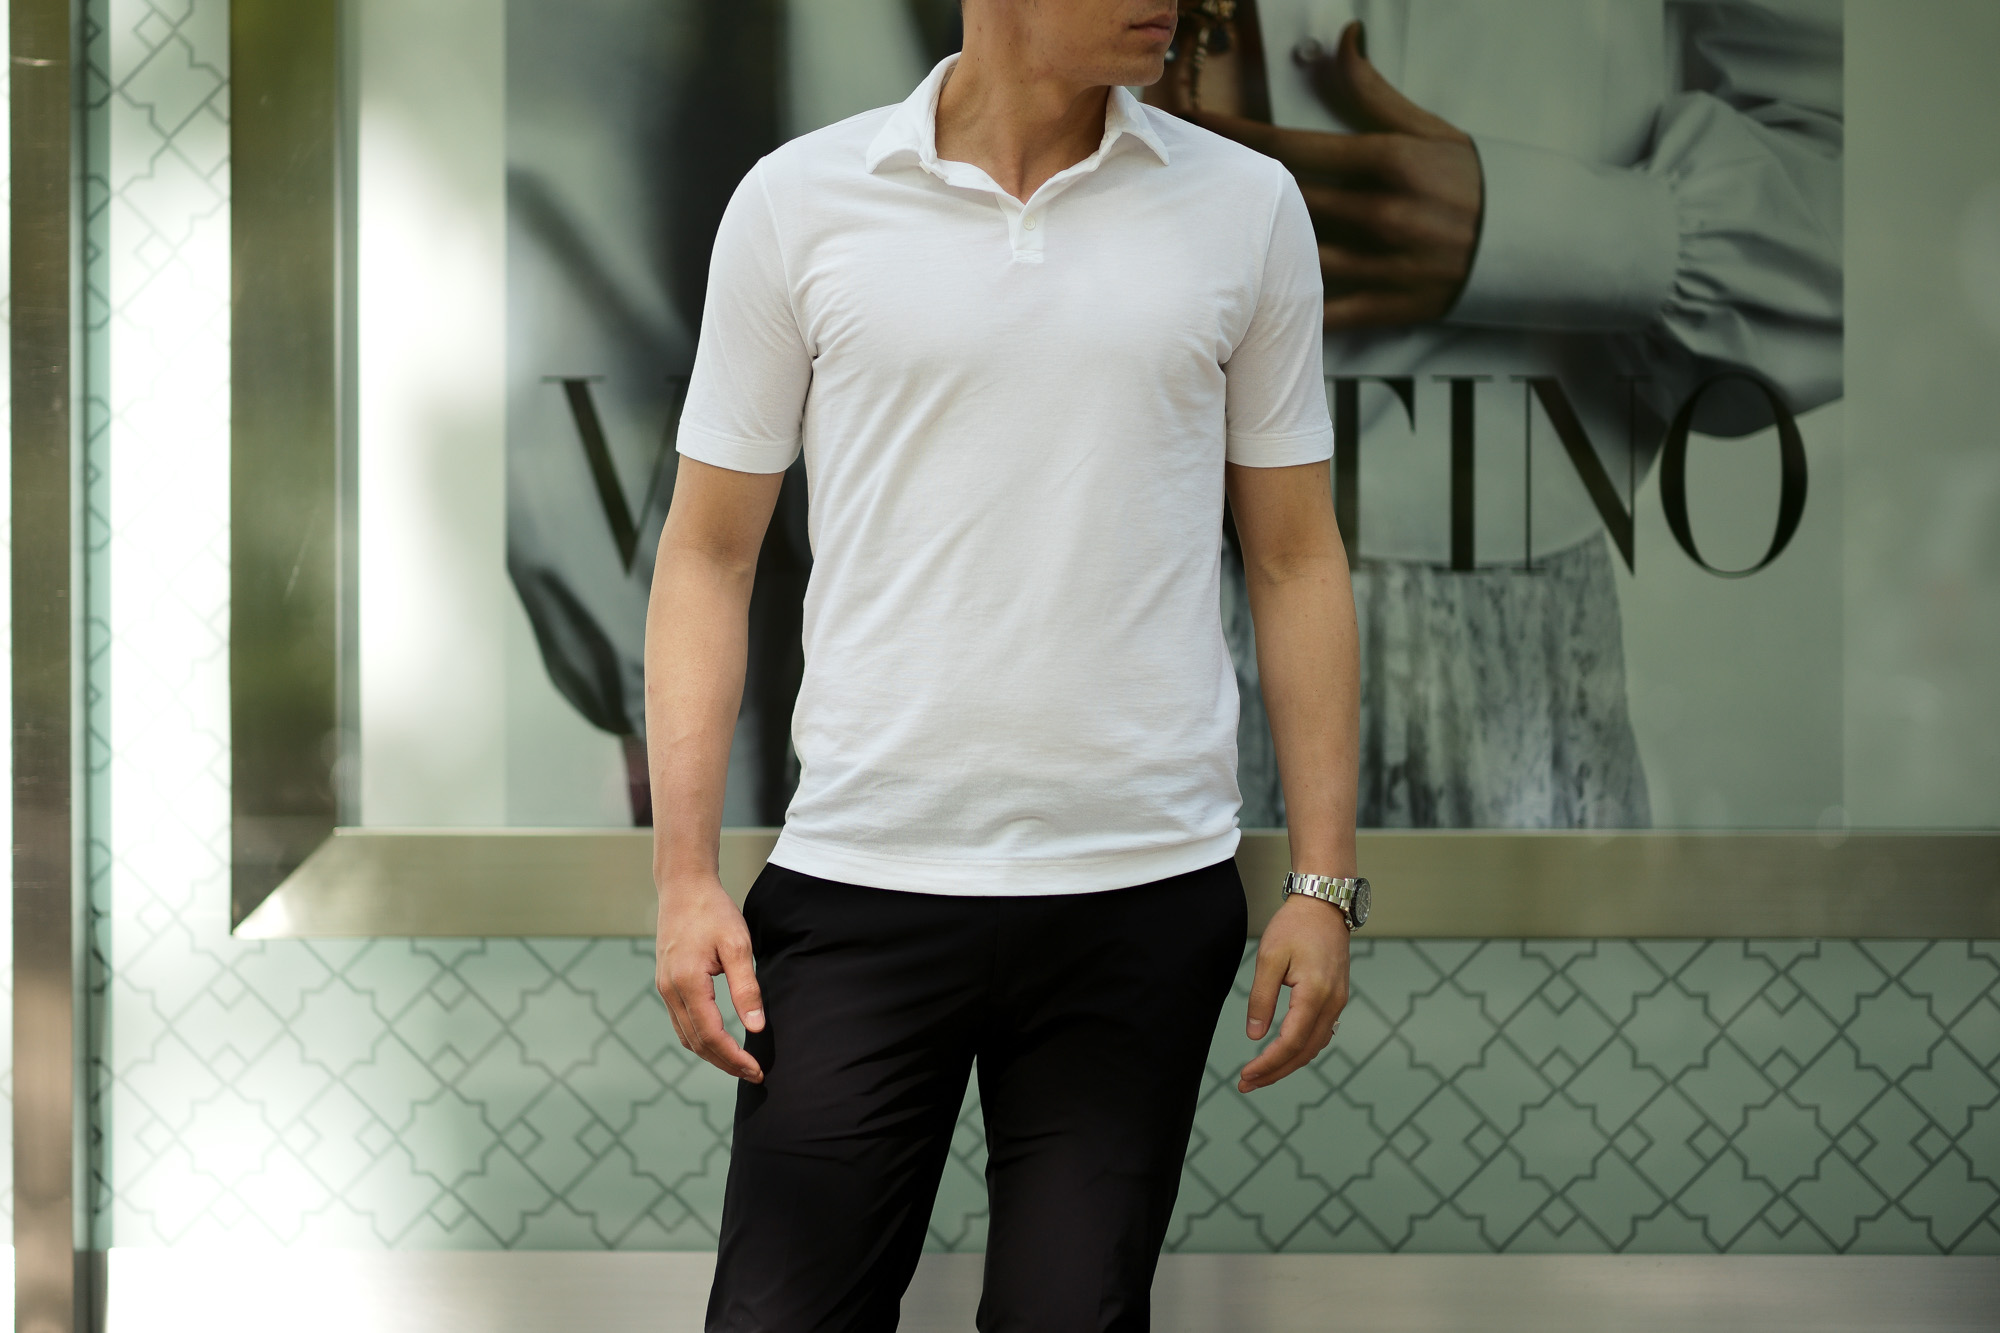 """ZANONE(ザノーネ) Polo Shirt ice cotton アイスコットン ポロシャツ WHITE (ホワイト・Z0001) made in italy (イタリア製) 2020春夏新作 愛知 名古屋 altoediritto アルトエデリット"""" wid"""